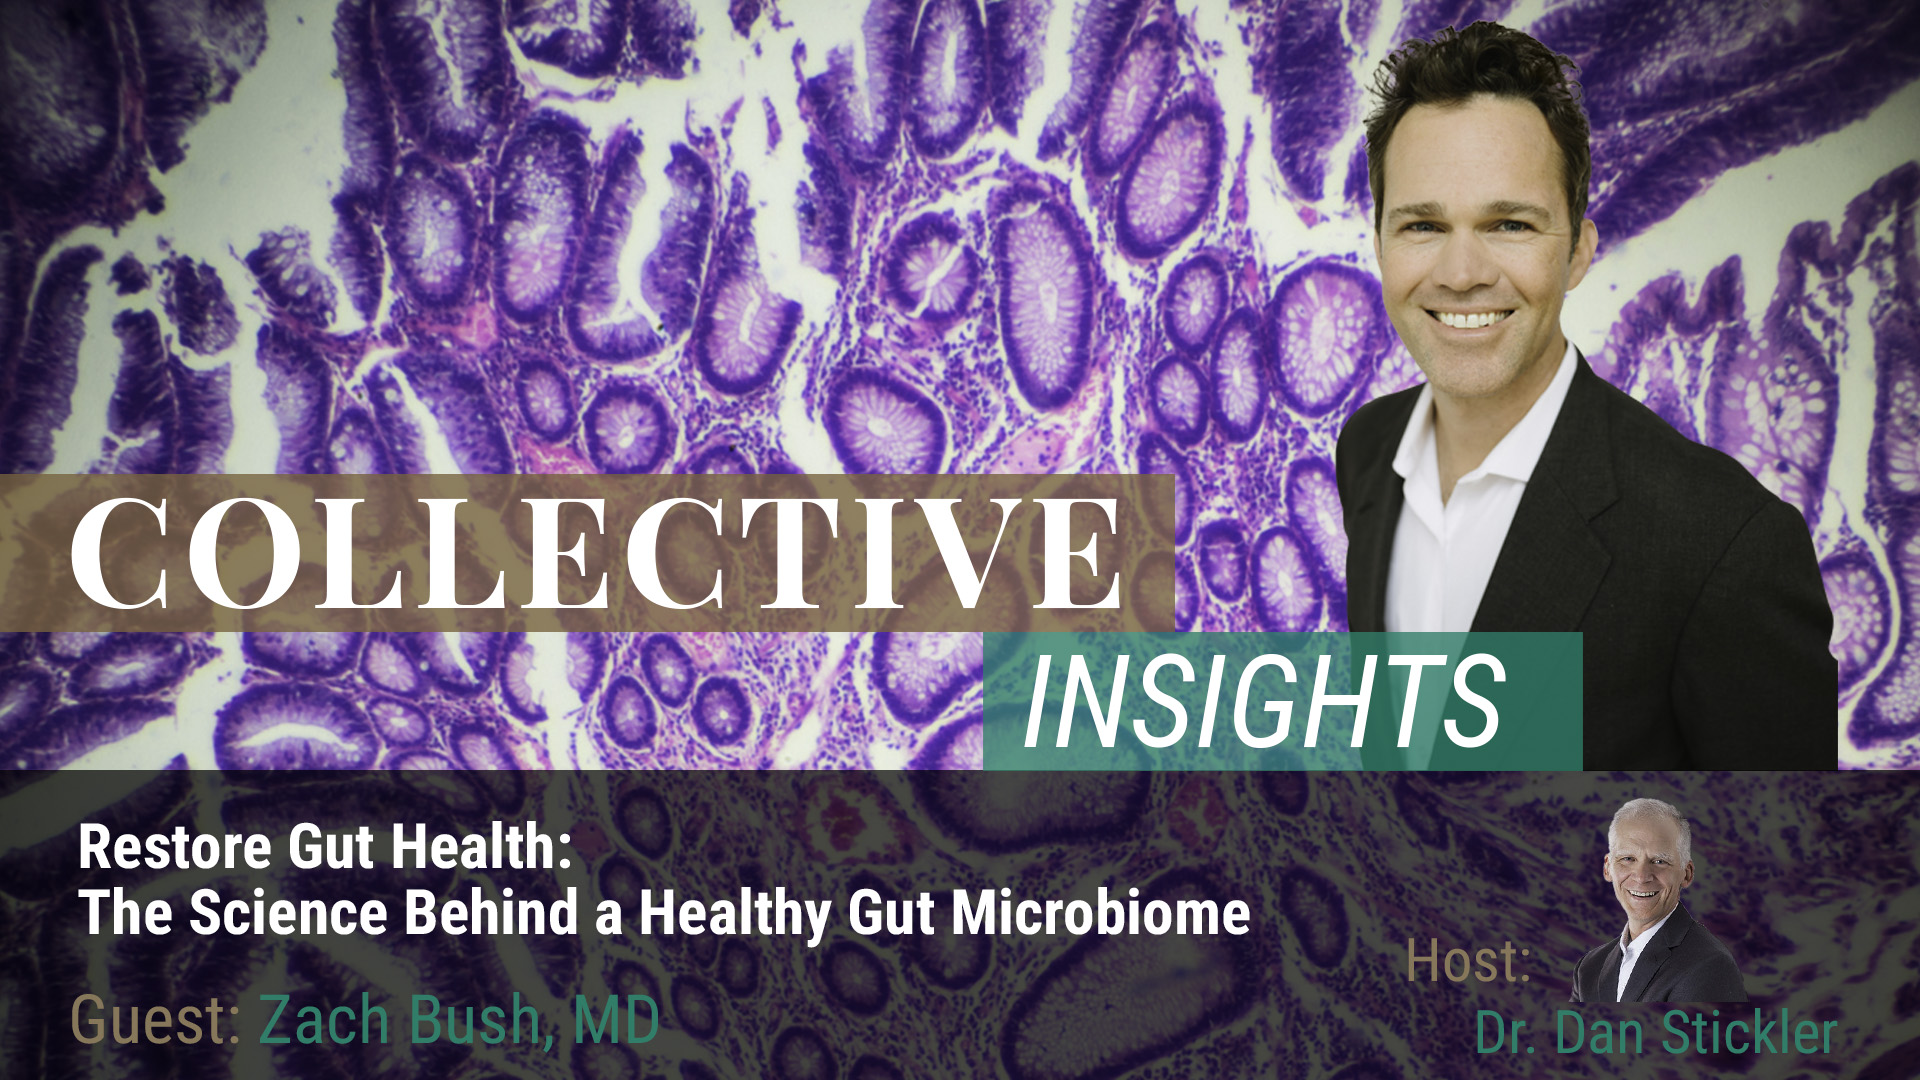 Restore Gut Health: The Science Behind a Healthy Gut Microbiome